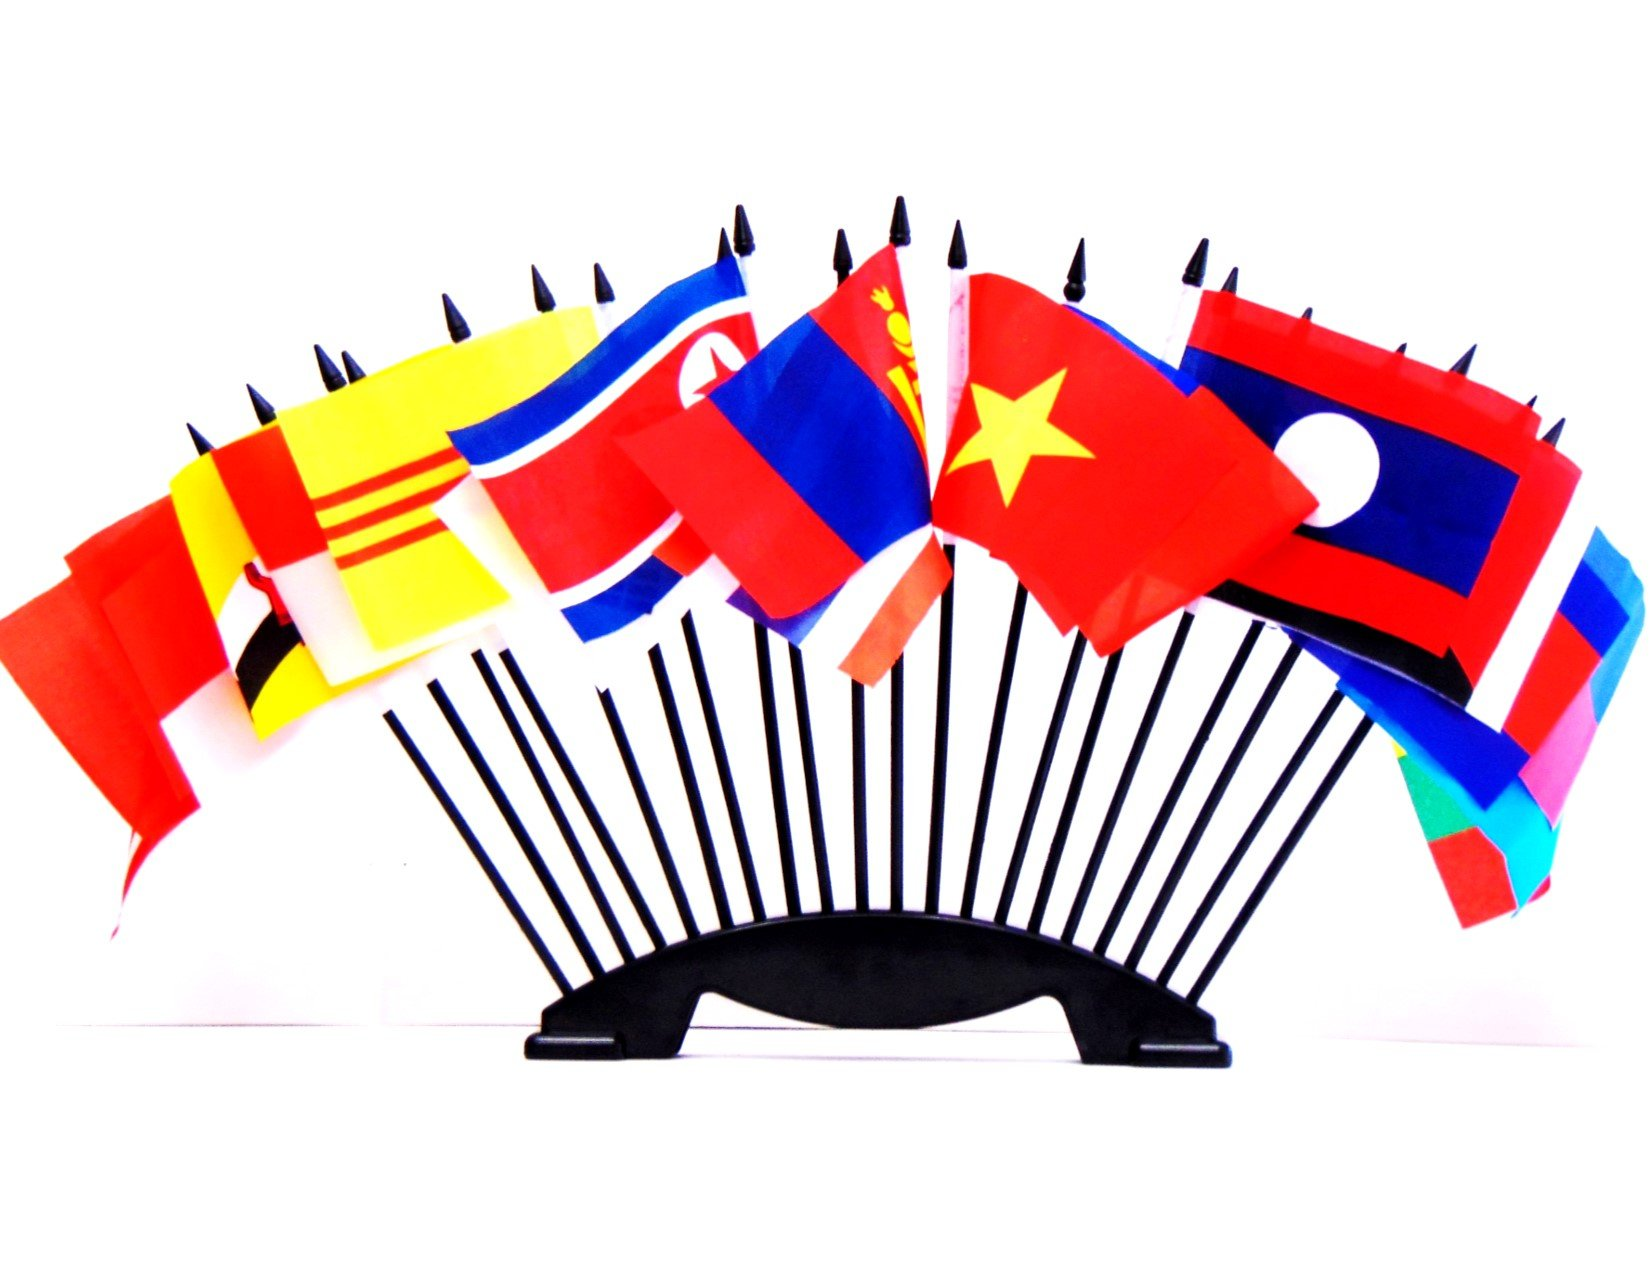 South East Asia World Flag Set with BASE-20 Polyester 4''x6'' Flags, One Flag for Each Country in South East Asia Flag Centerpiece, 4x6 Miniature Desk & Table Flags, Small Mini Stick Flags by World Flags Direct